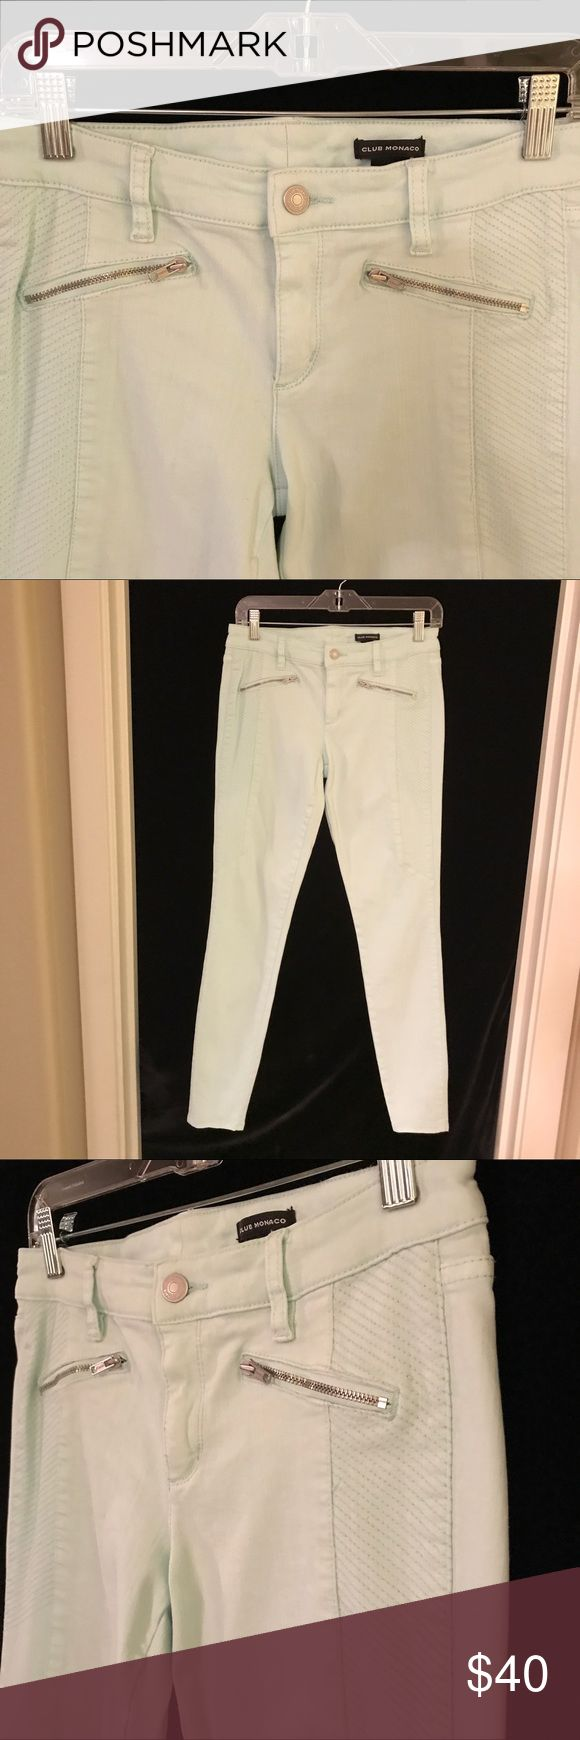 Club Monaco Pale Blue Skinny Pants w/Zippers 4 Pale ice blue stretchy skinny pants with front zippers and texturing on the sides.  Inseam measures 29.5 inches.  Excellent preowned condition. Club Monaco Pants Skinny